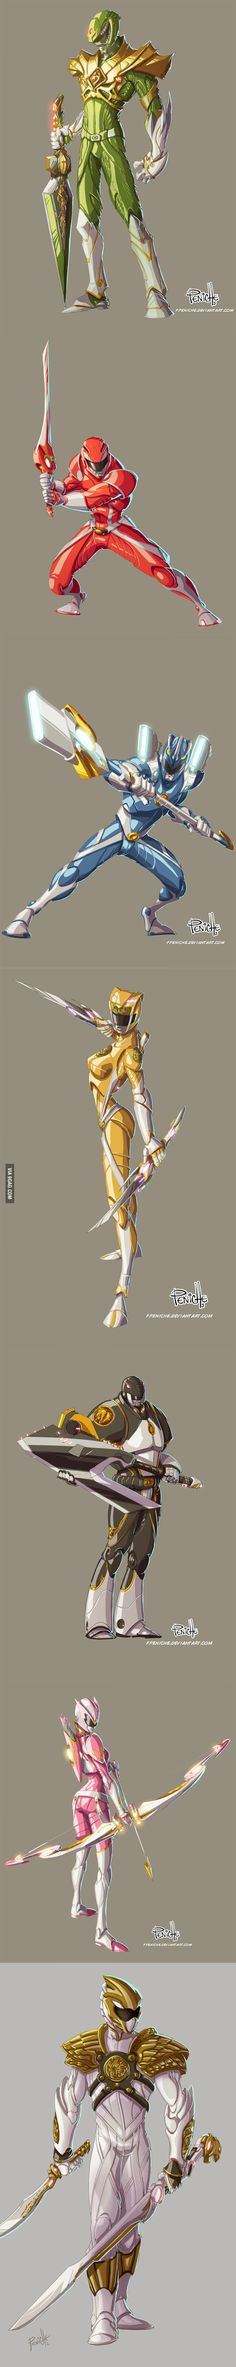 Power Rangers Anime Version From The 1st Gen. Redesigned by Mexican artist Fernando Peniche